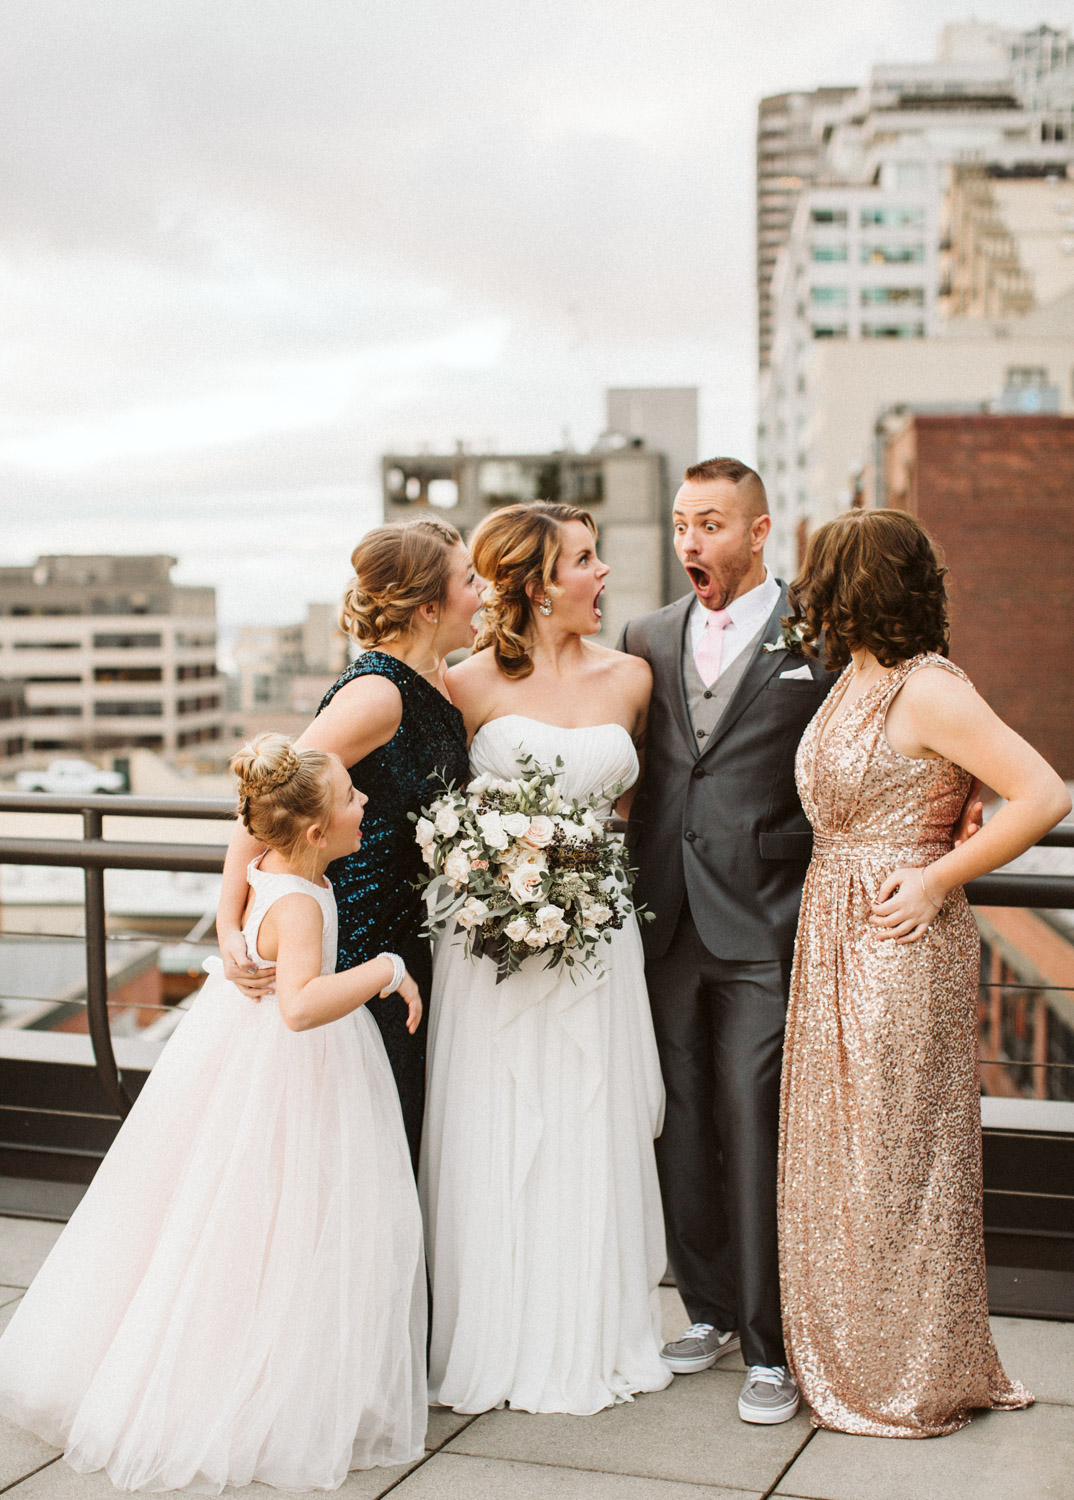 Family Photos Inn at the Market Pike Place Seattle Wedding by Reese Ferguson